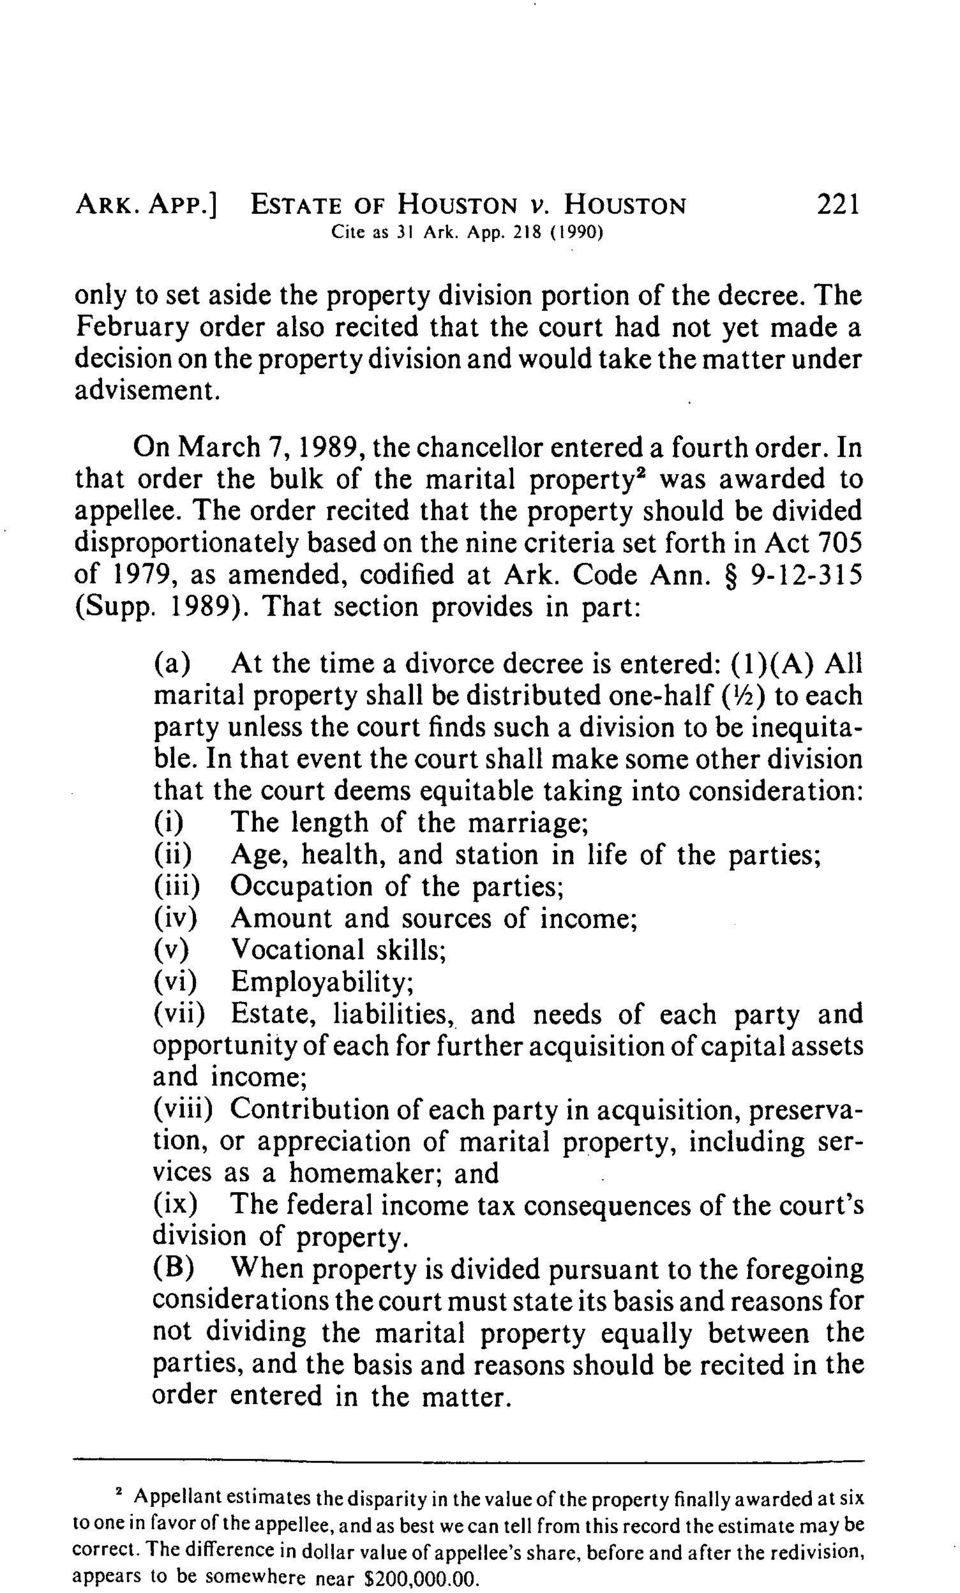 In that order the bulk of the marital property 2 was awarded to appellee.